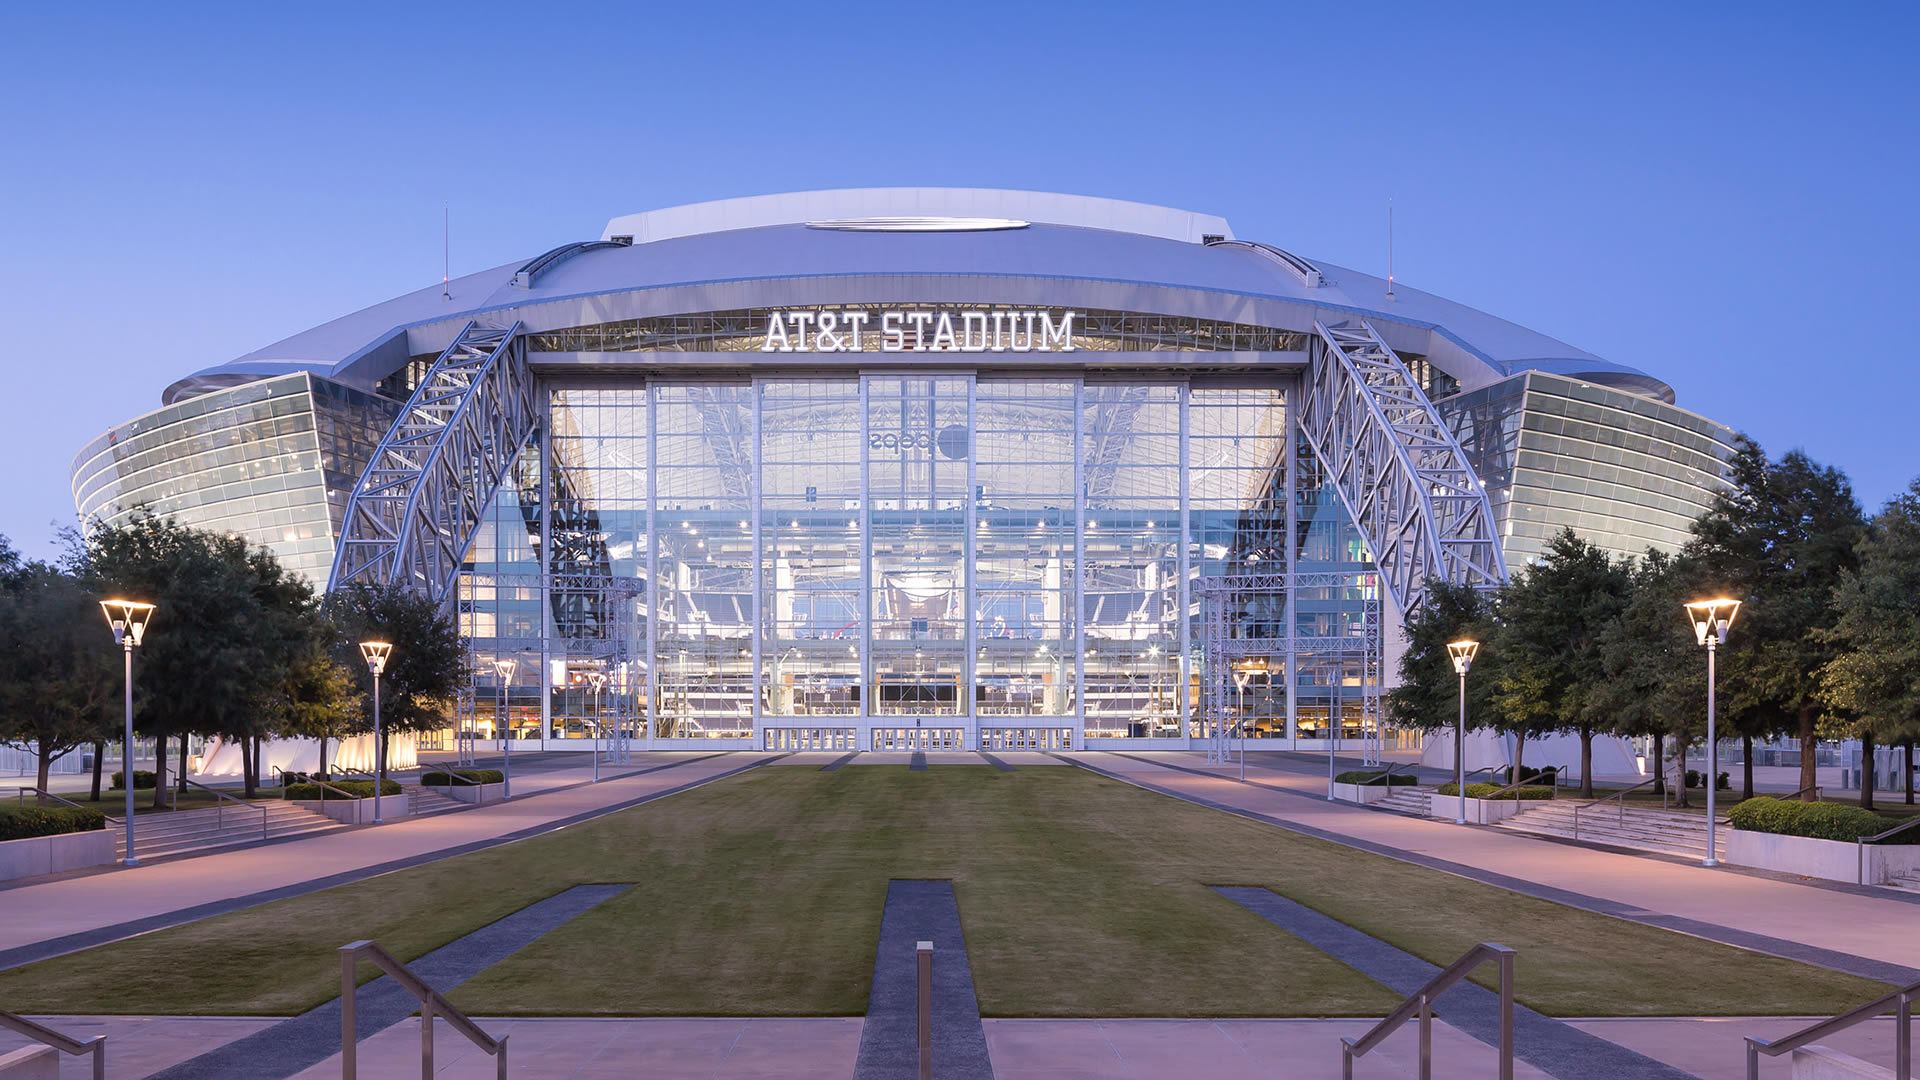 A visit to Dallas - Fort Worth would not be complete without watching a game at AT&T Stadium, home of the Dallas Cowboys.